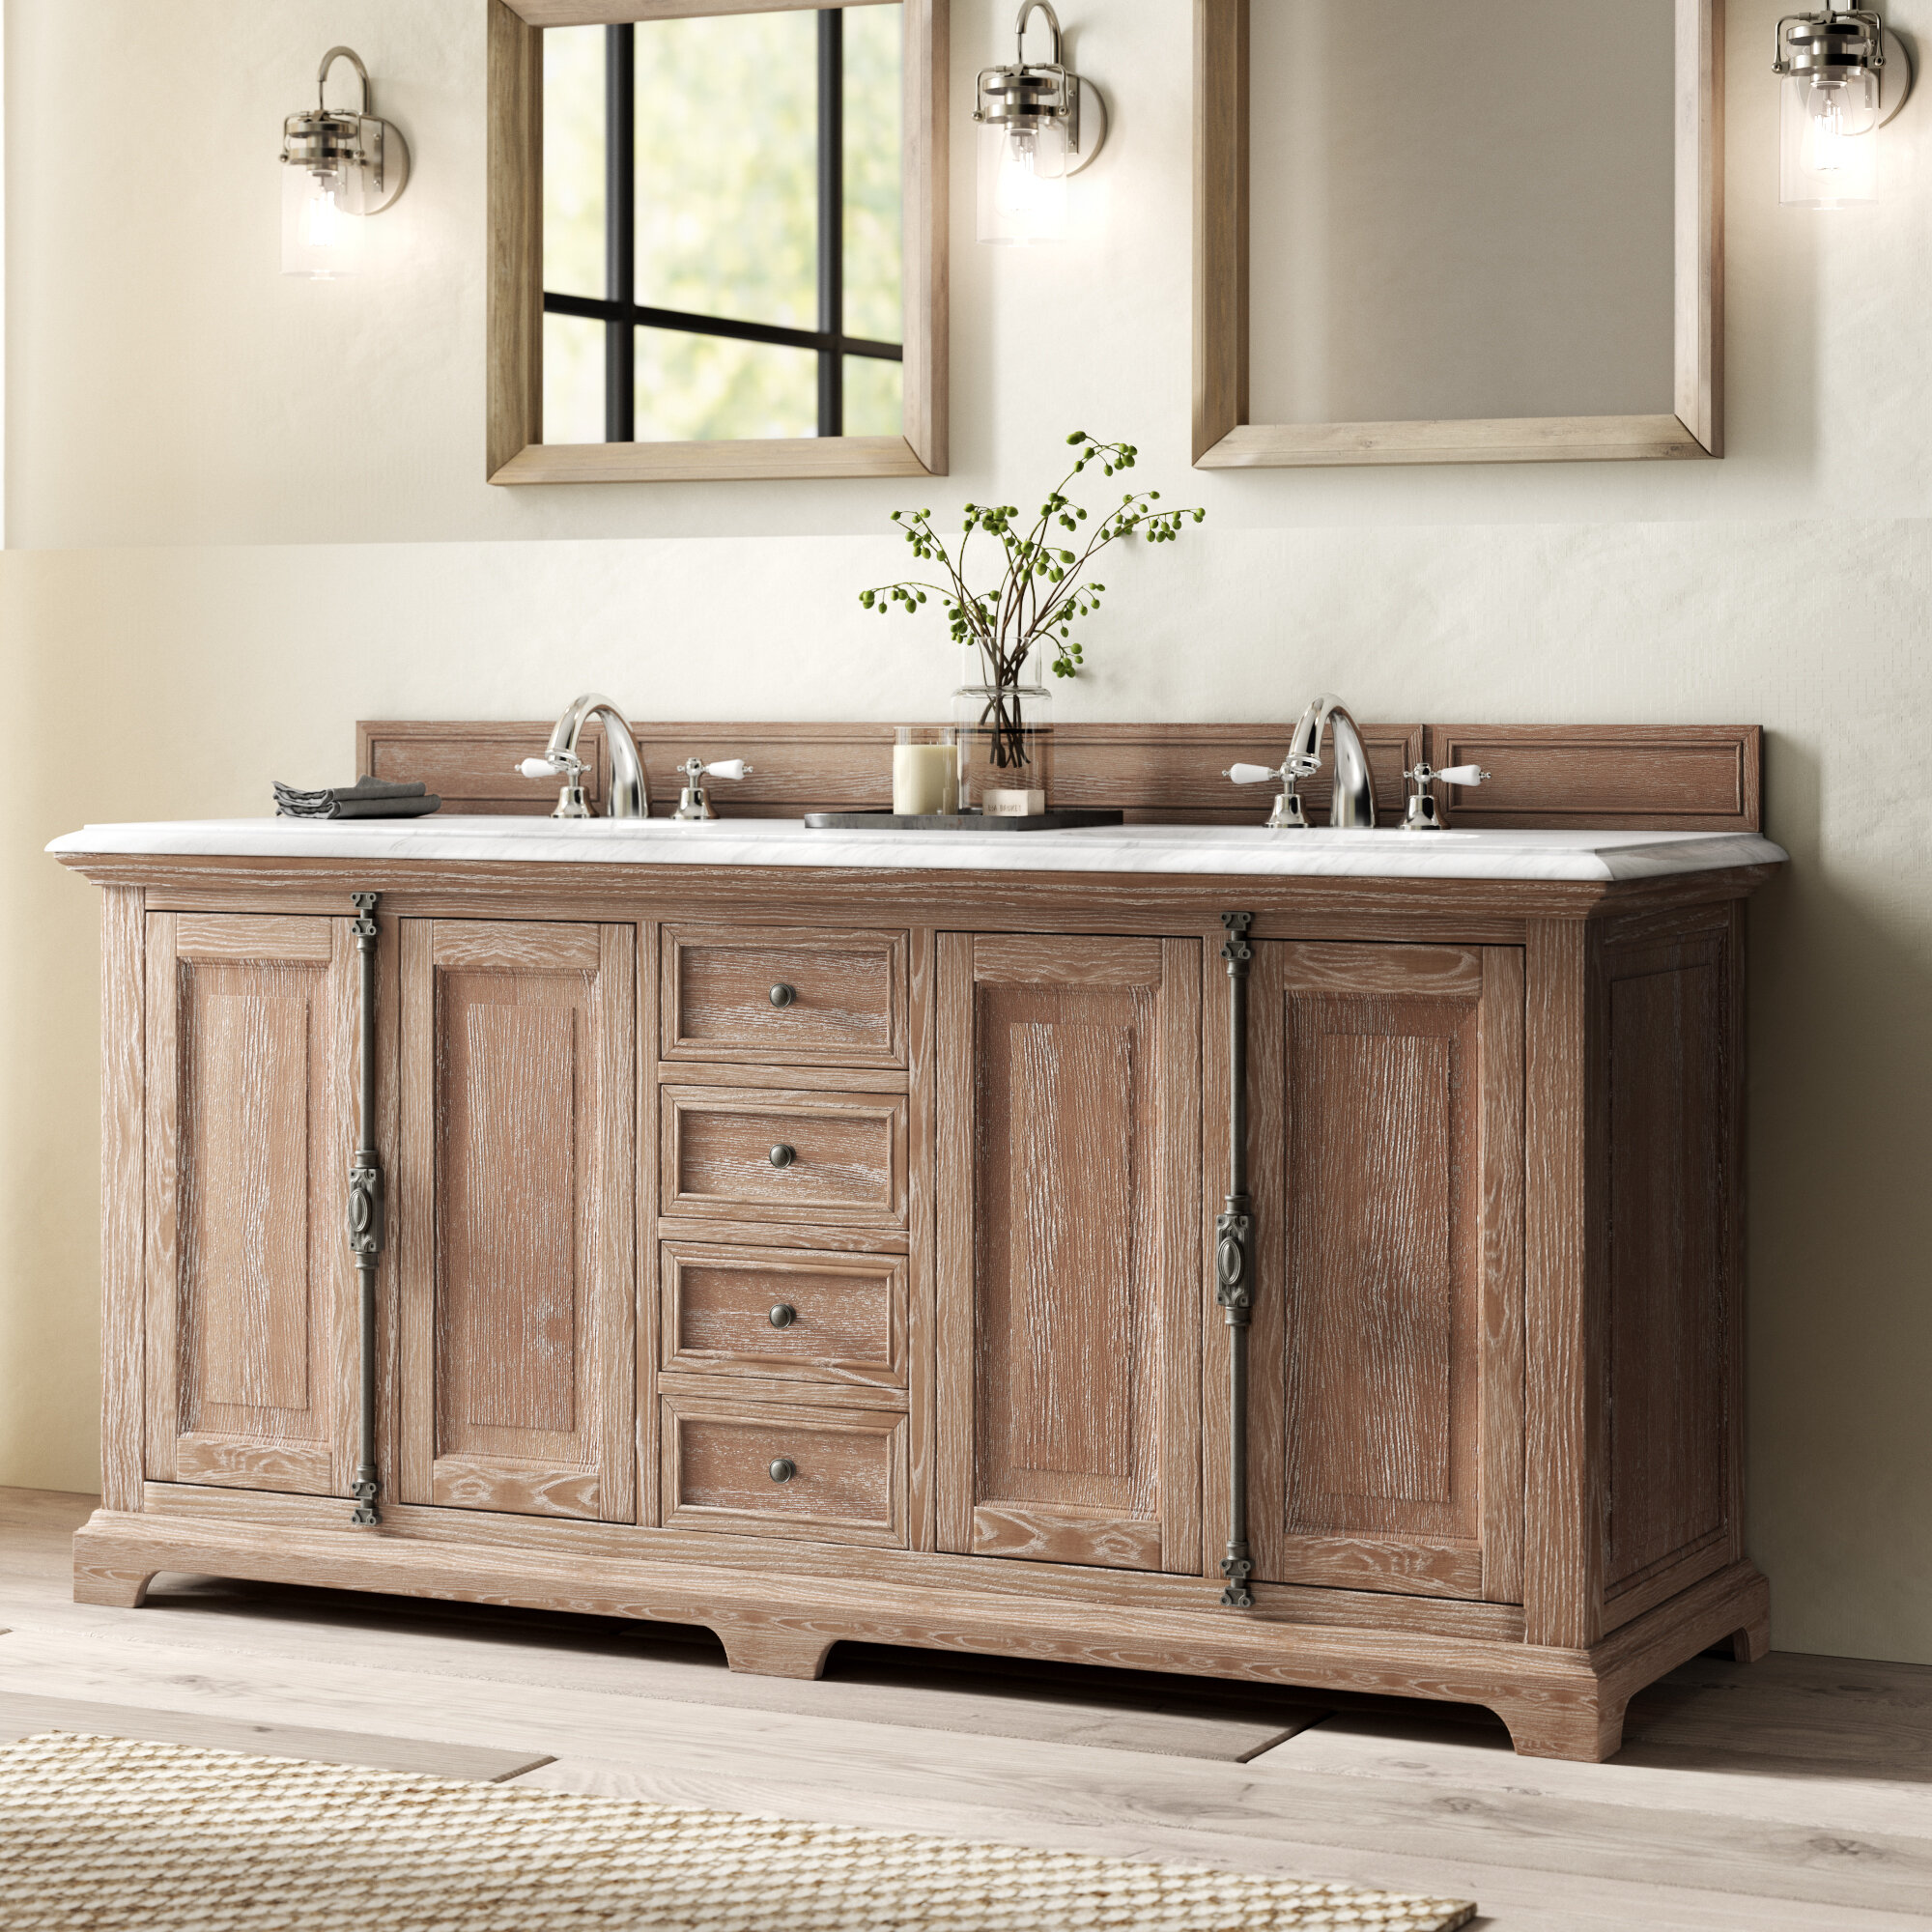 Swell Greyleigh Ogallala 72 Double Bathroom Vanity Set Reviews Home Interior And Landscaping Ferensignezvosmurscom